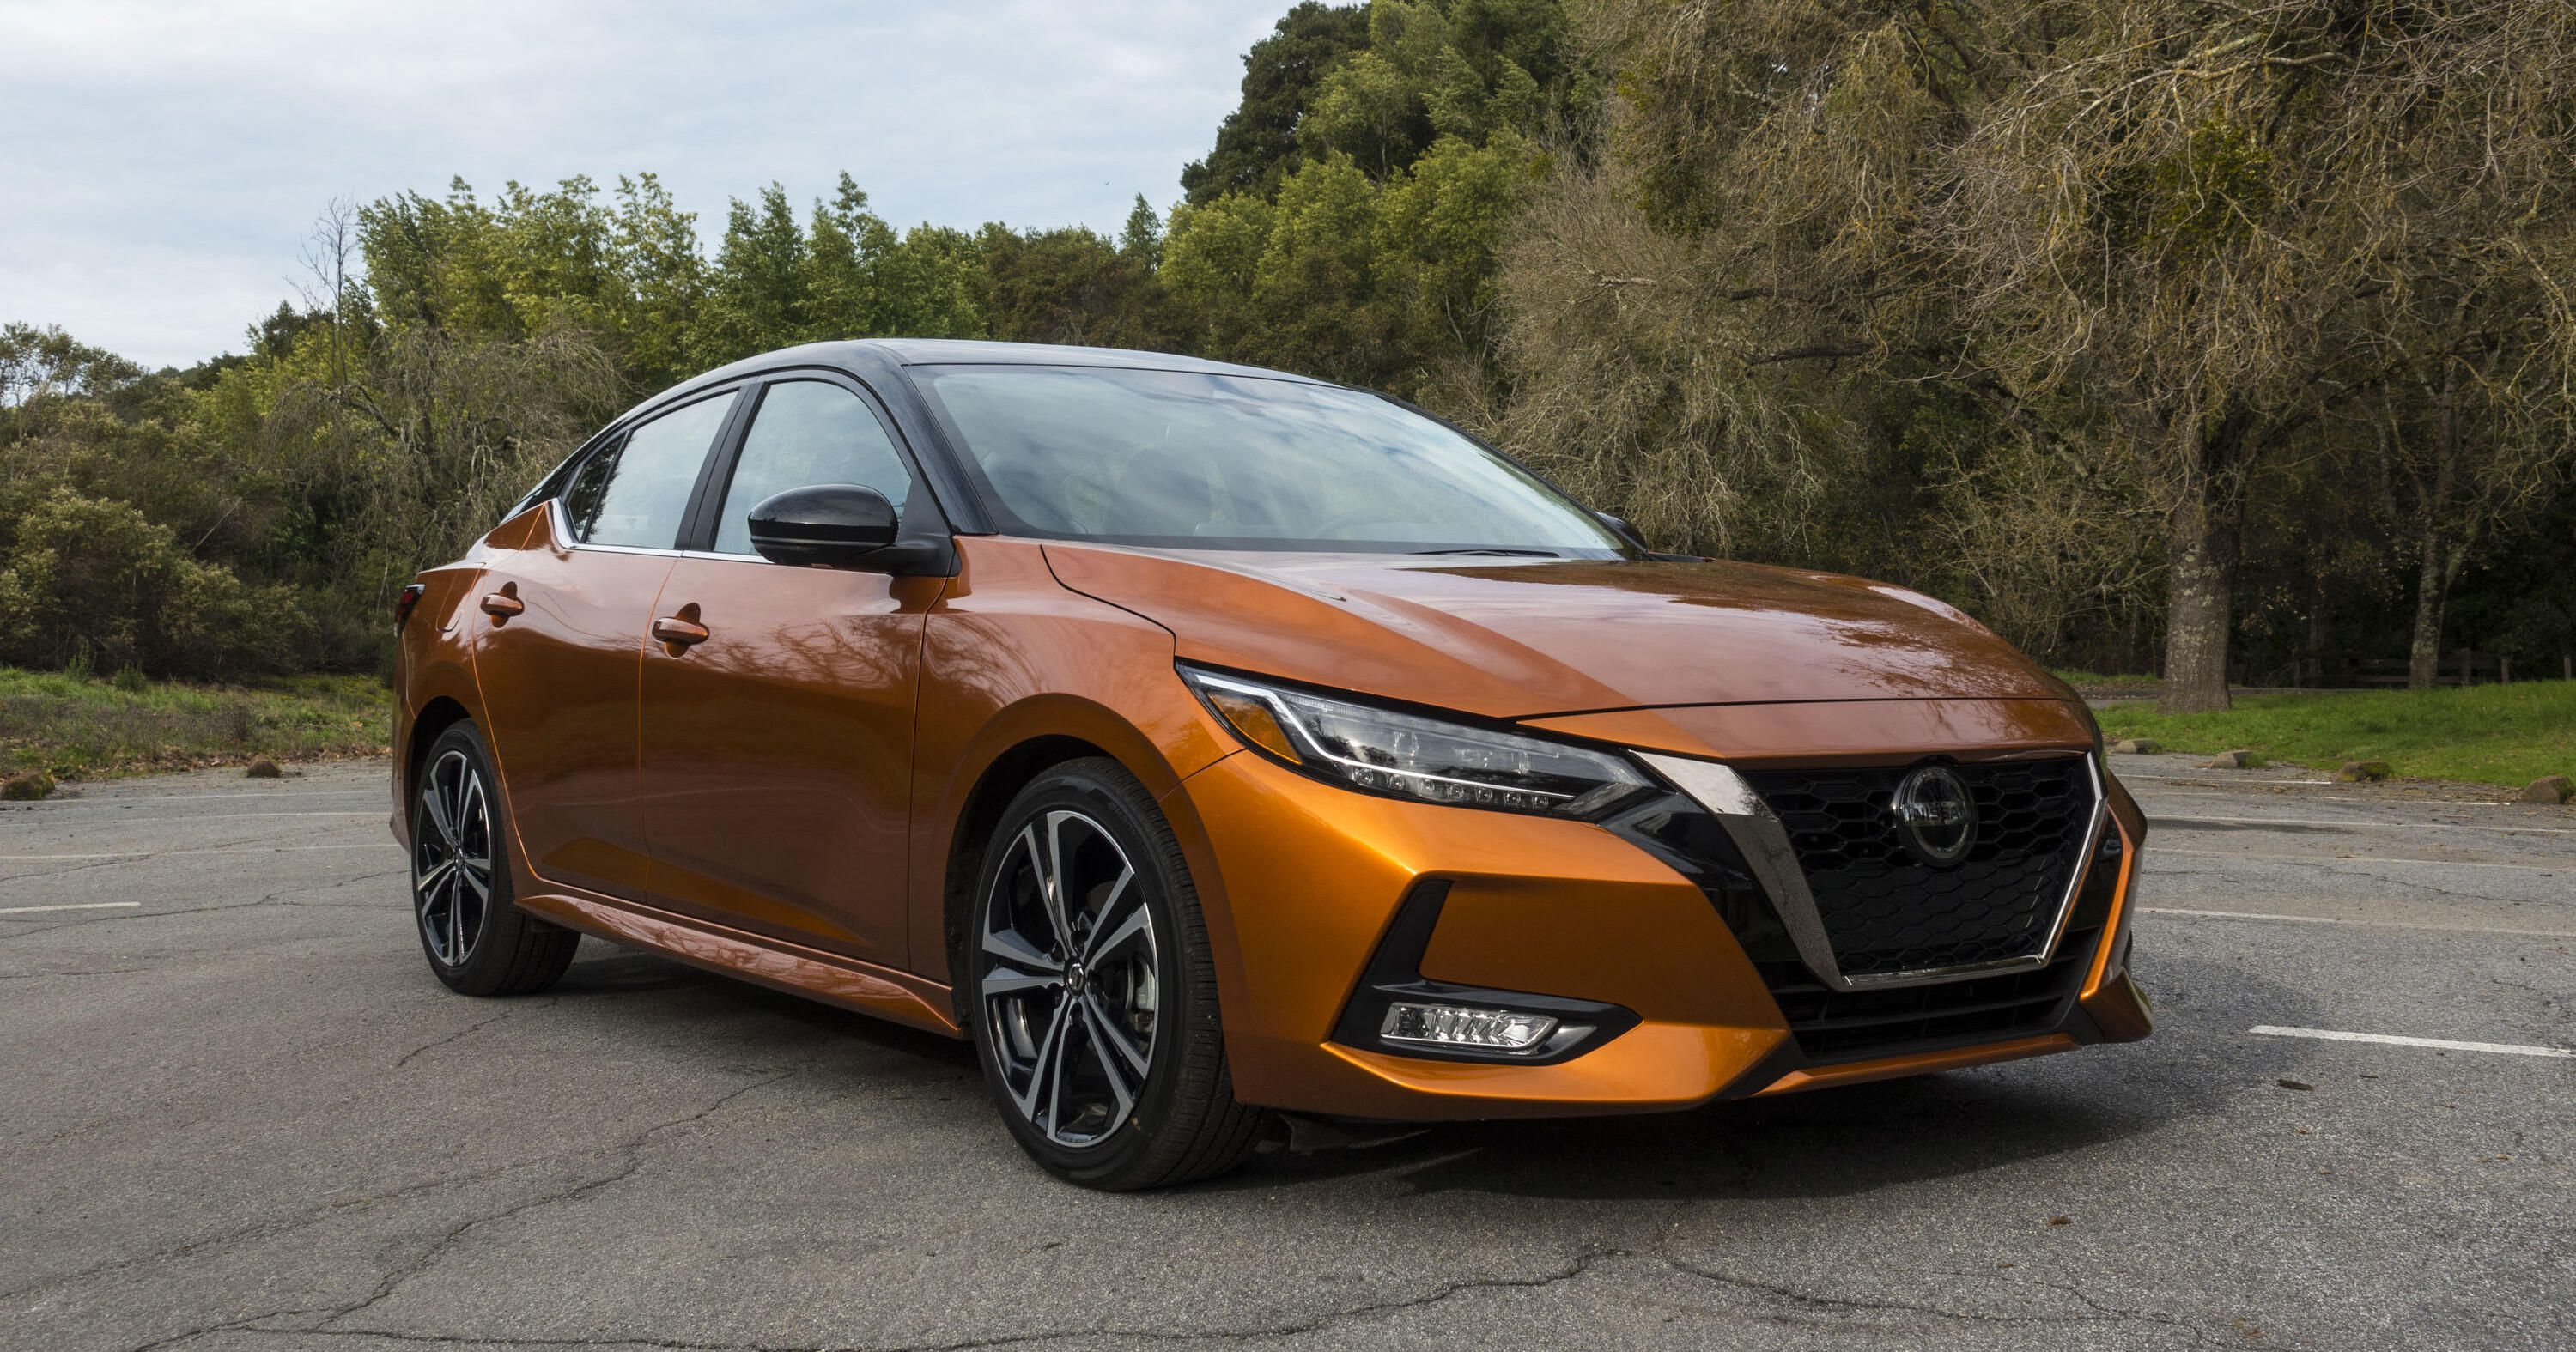 2020 Nissan Sentra Review Super Commuter Nissan Sentra Nissan Good Looking Cars